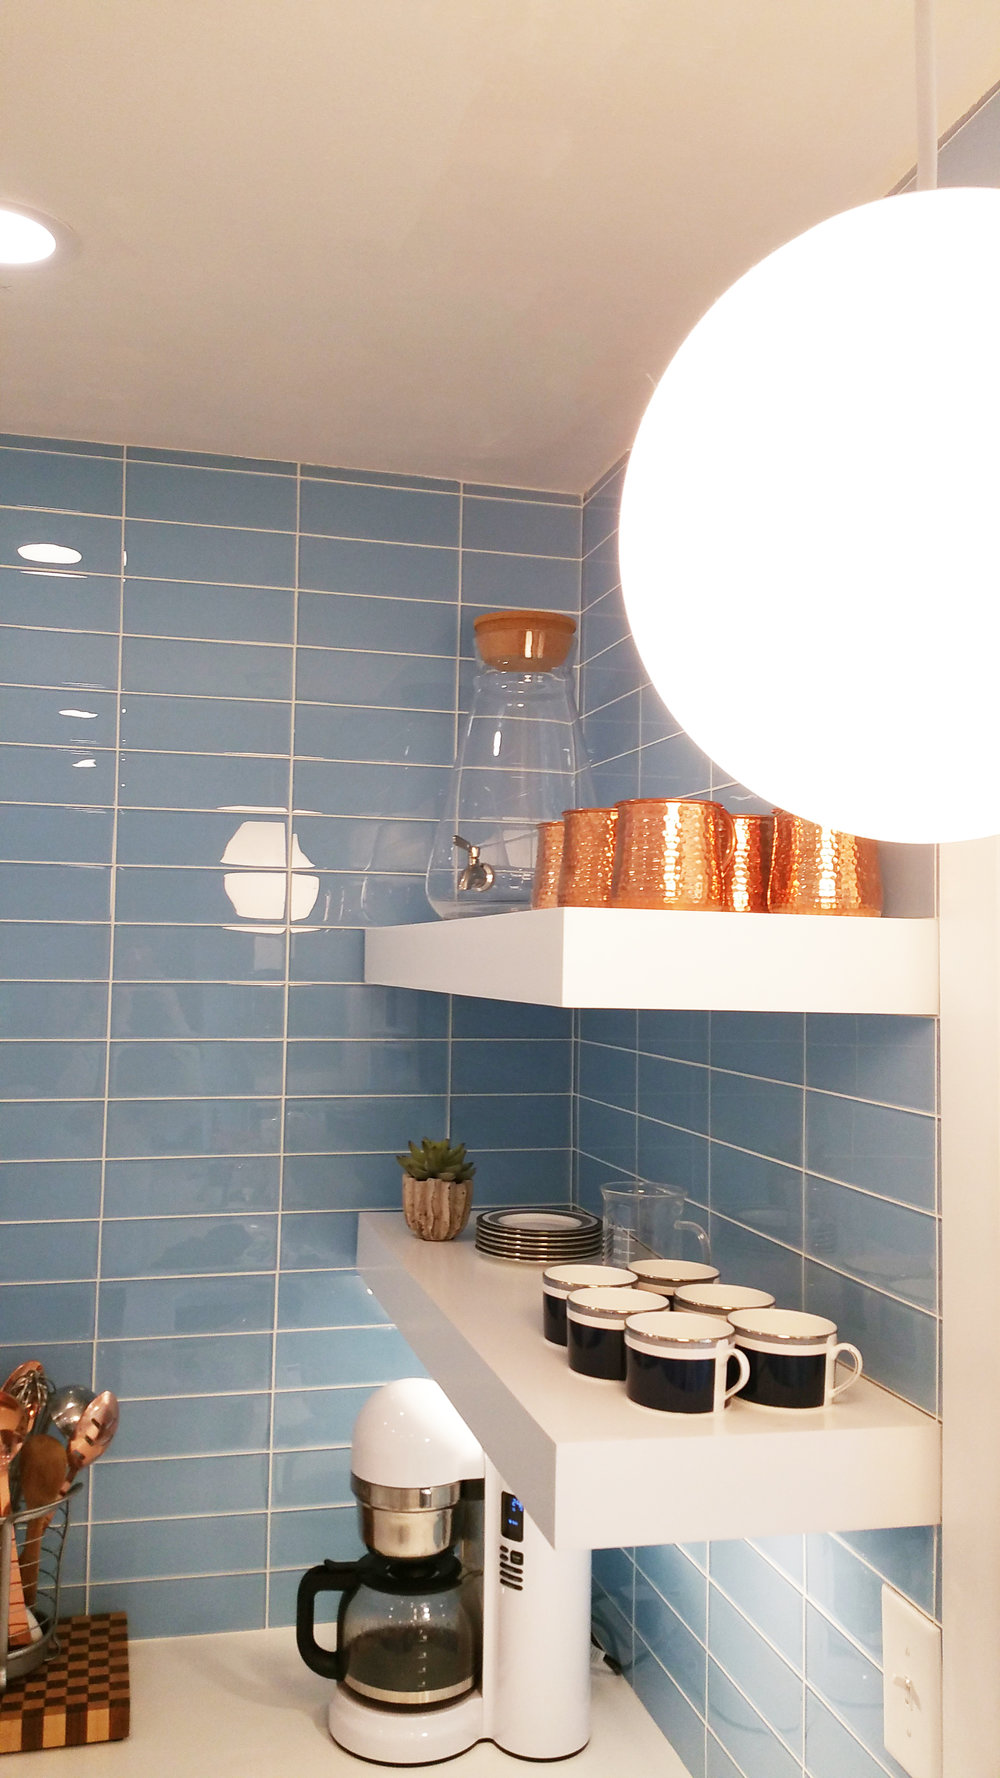 Pendant lighting over sink